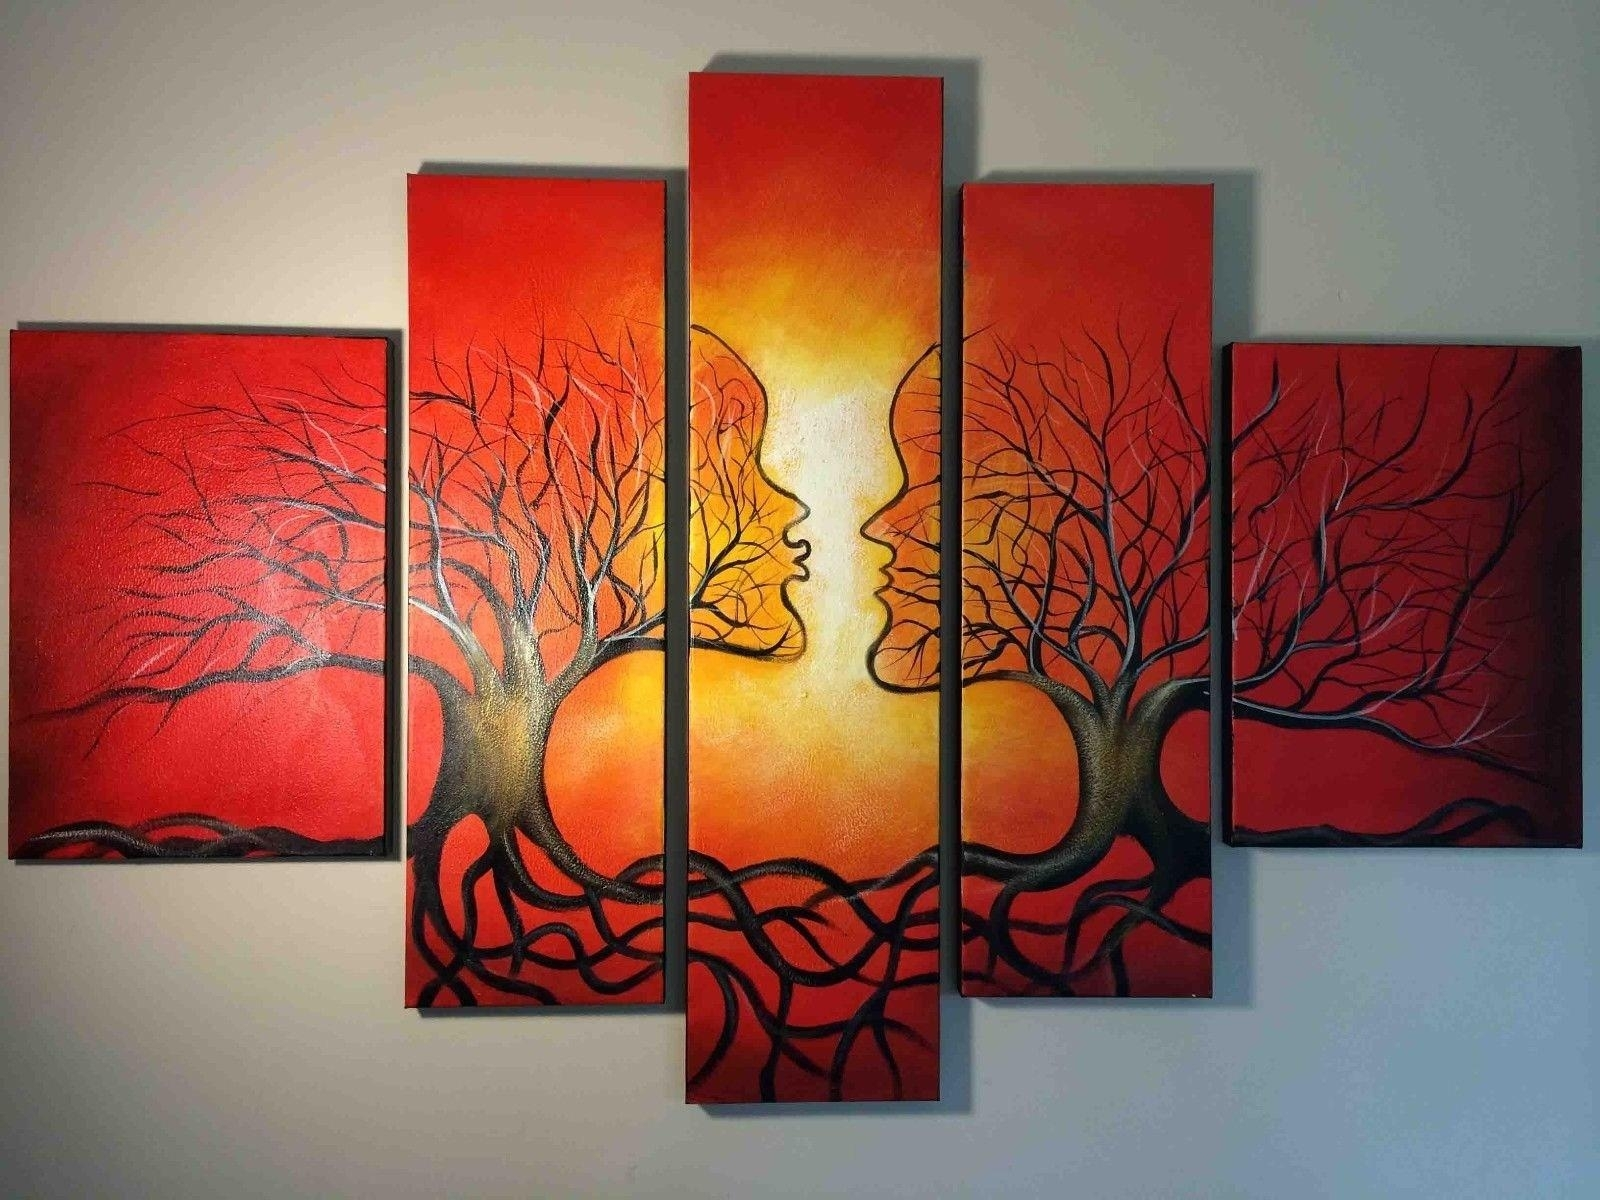 Wall Art Designs: Abstract Wall Art Red Abstract Oil Painting Pertaining To Most Up To Date Large Framed Abstract Wall Art (View 16 of 20)